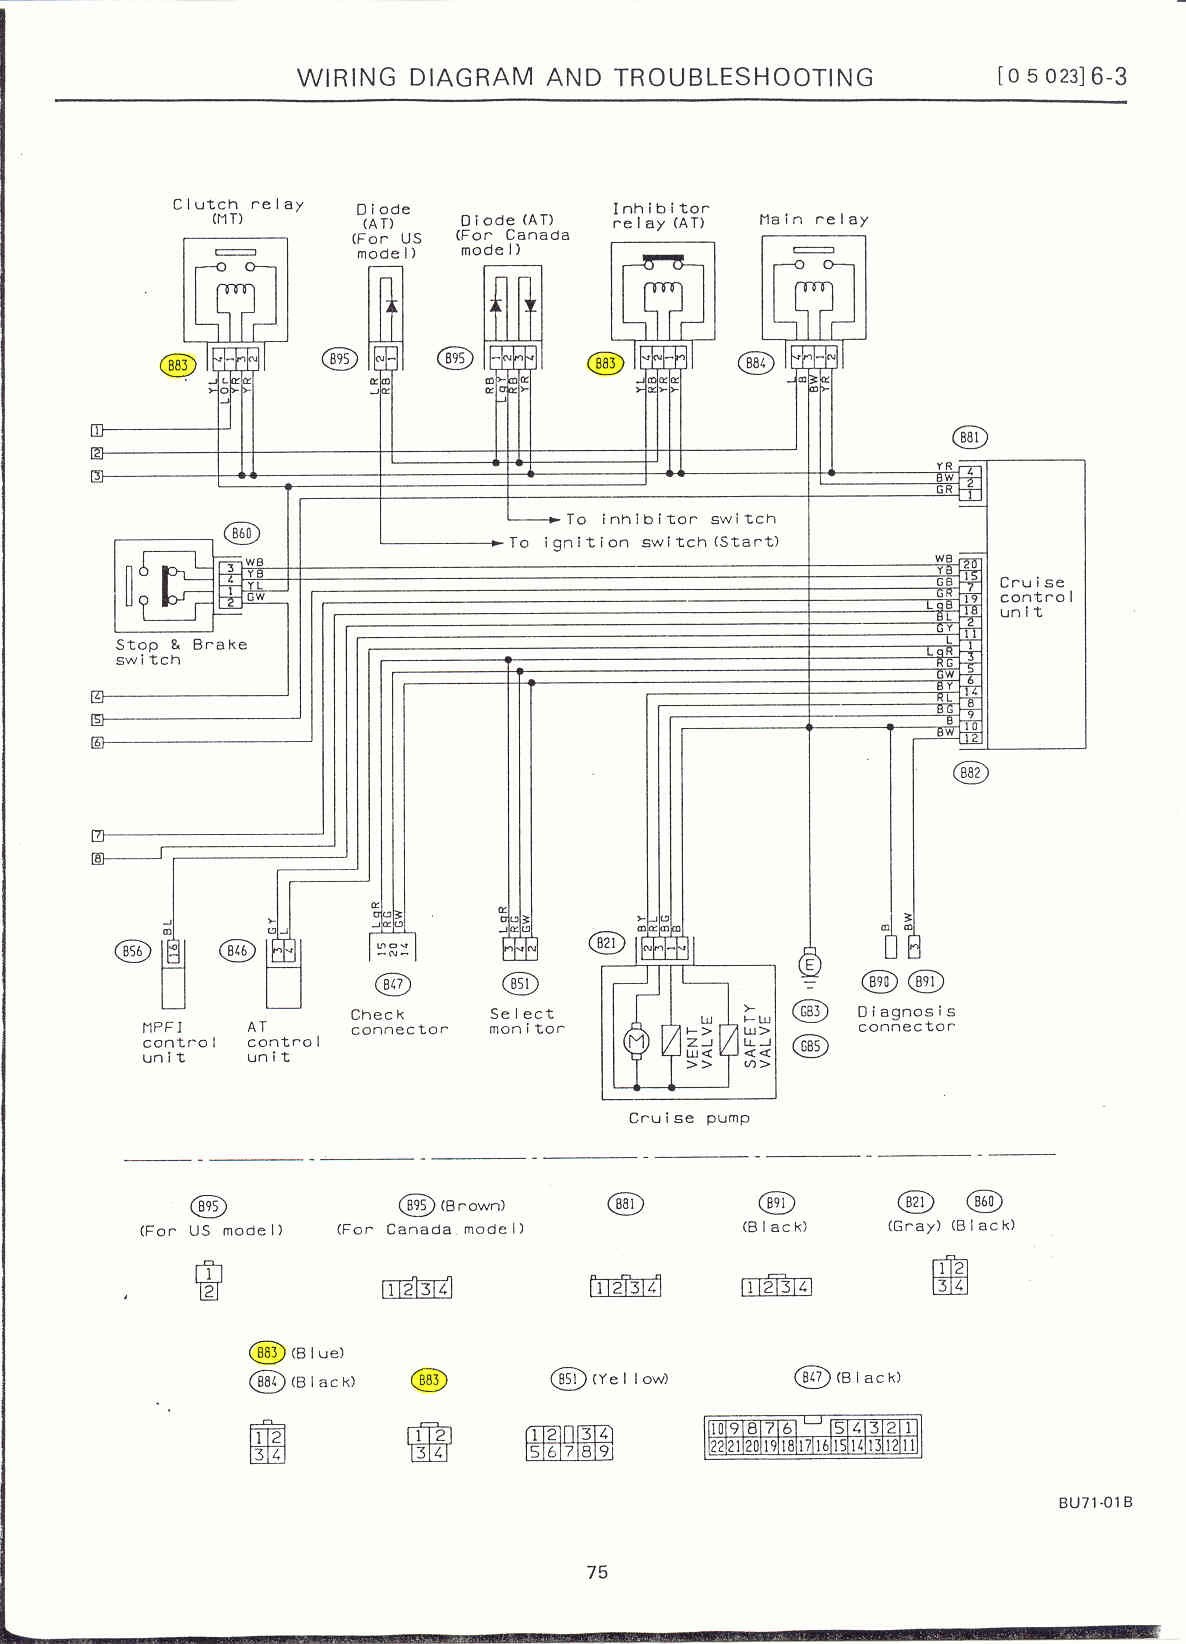 2002 subaru outback power window wiring diagram example electrical rh  emilyalbert co 2000 Subaru Outback Radio Diagram 1999 Subaru Outback Fuse  Diagram